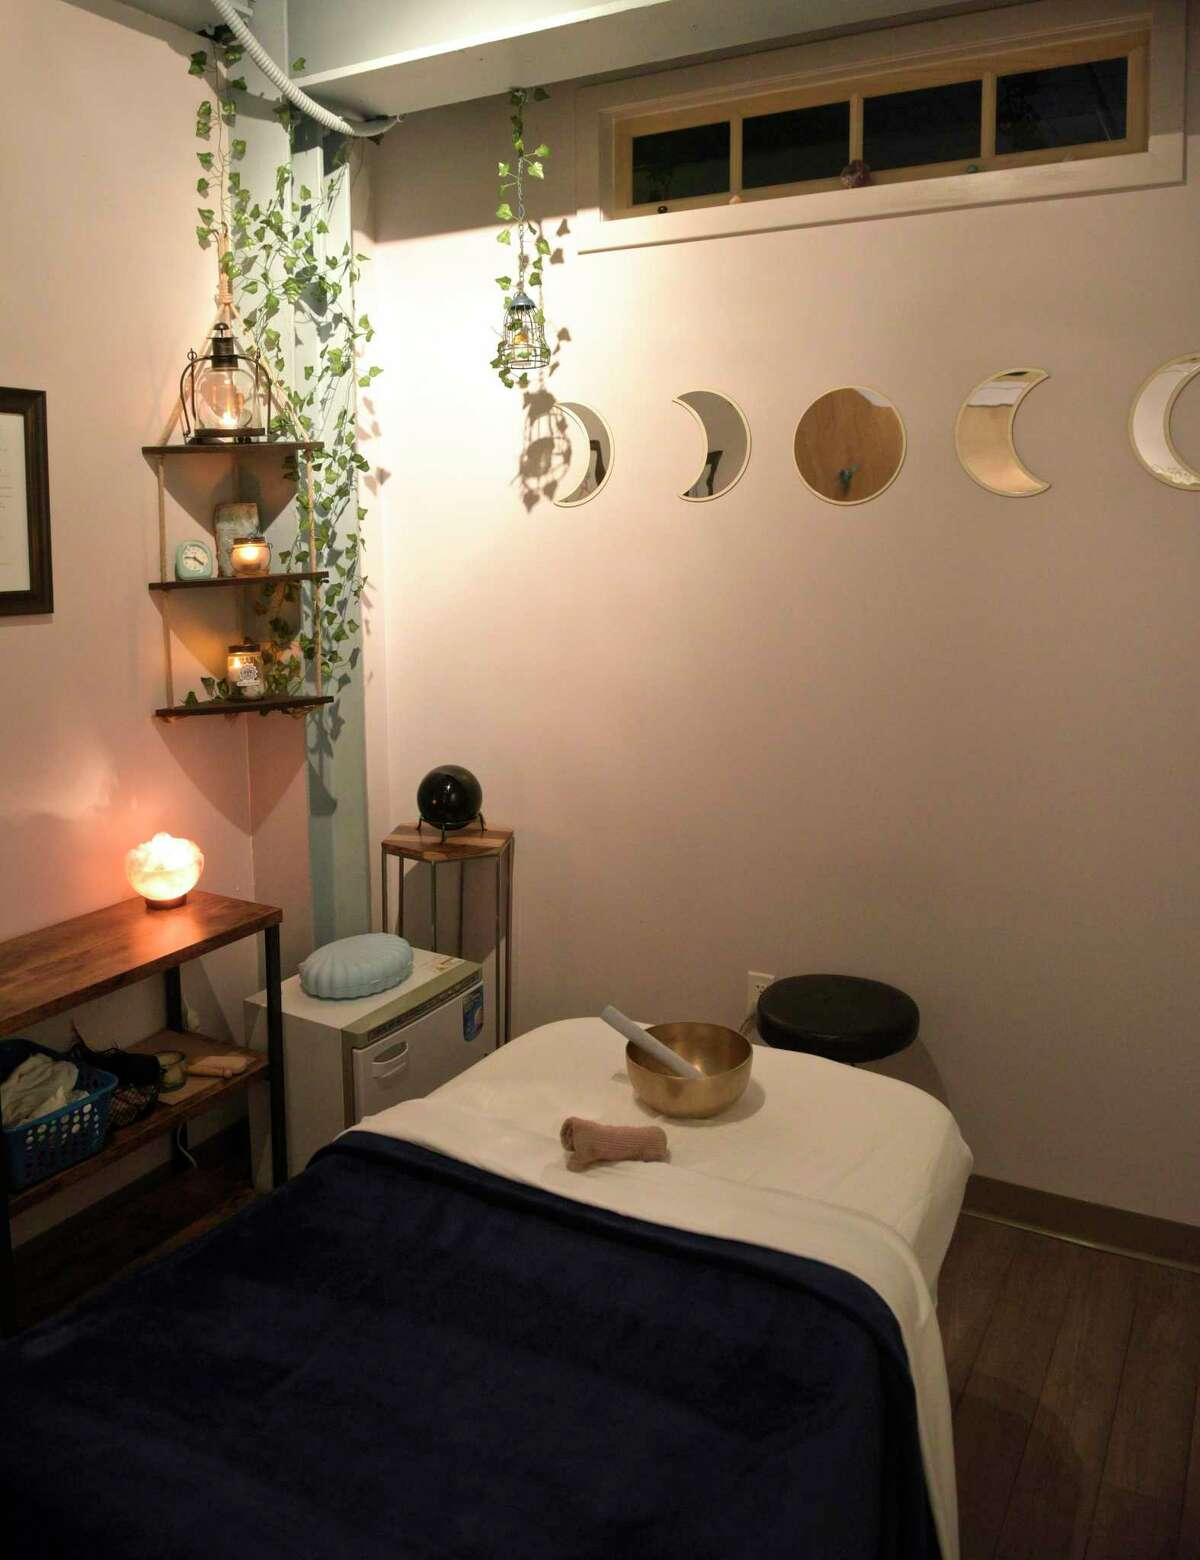 A therapy room at Grow Wellness at 901 Ethan Allen Highway in Ridgefield. The alternative therapy practice is holding a grand opening celebration this weekend to mark its expansion during the pandemic.